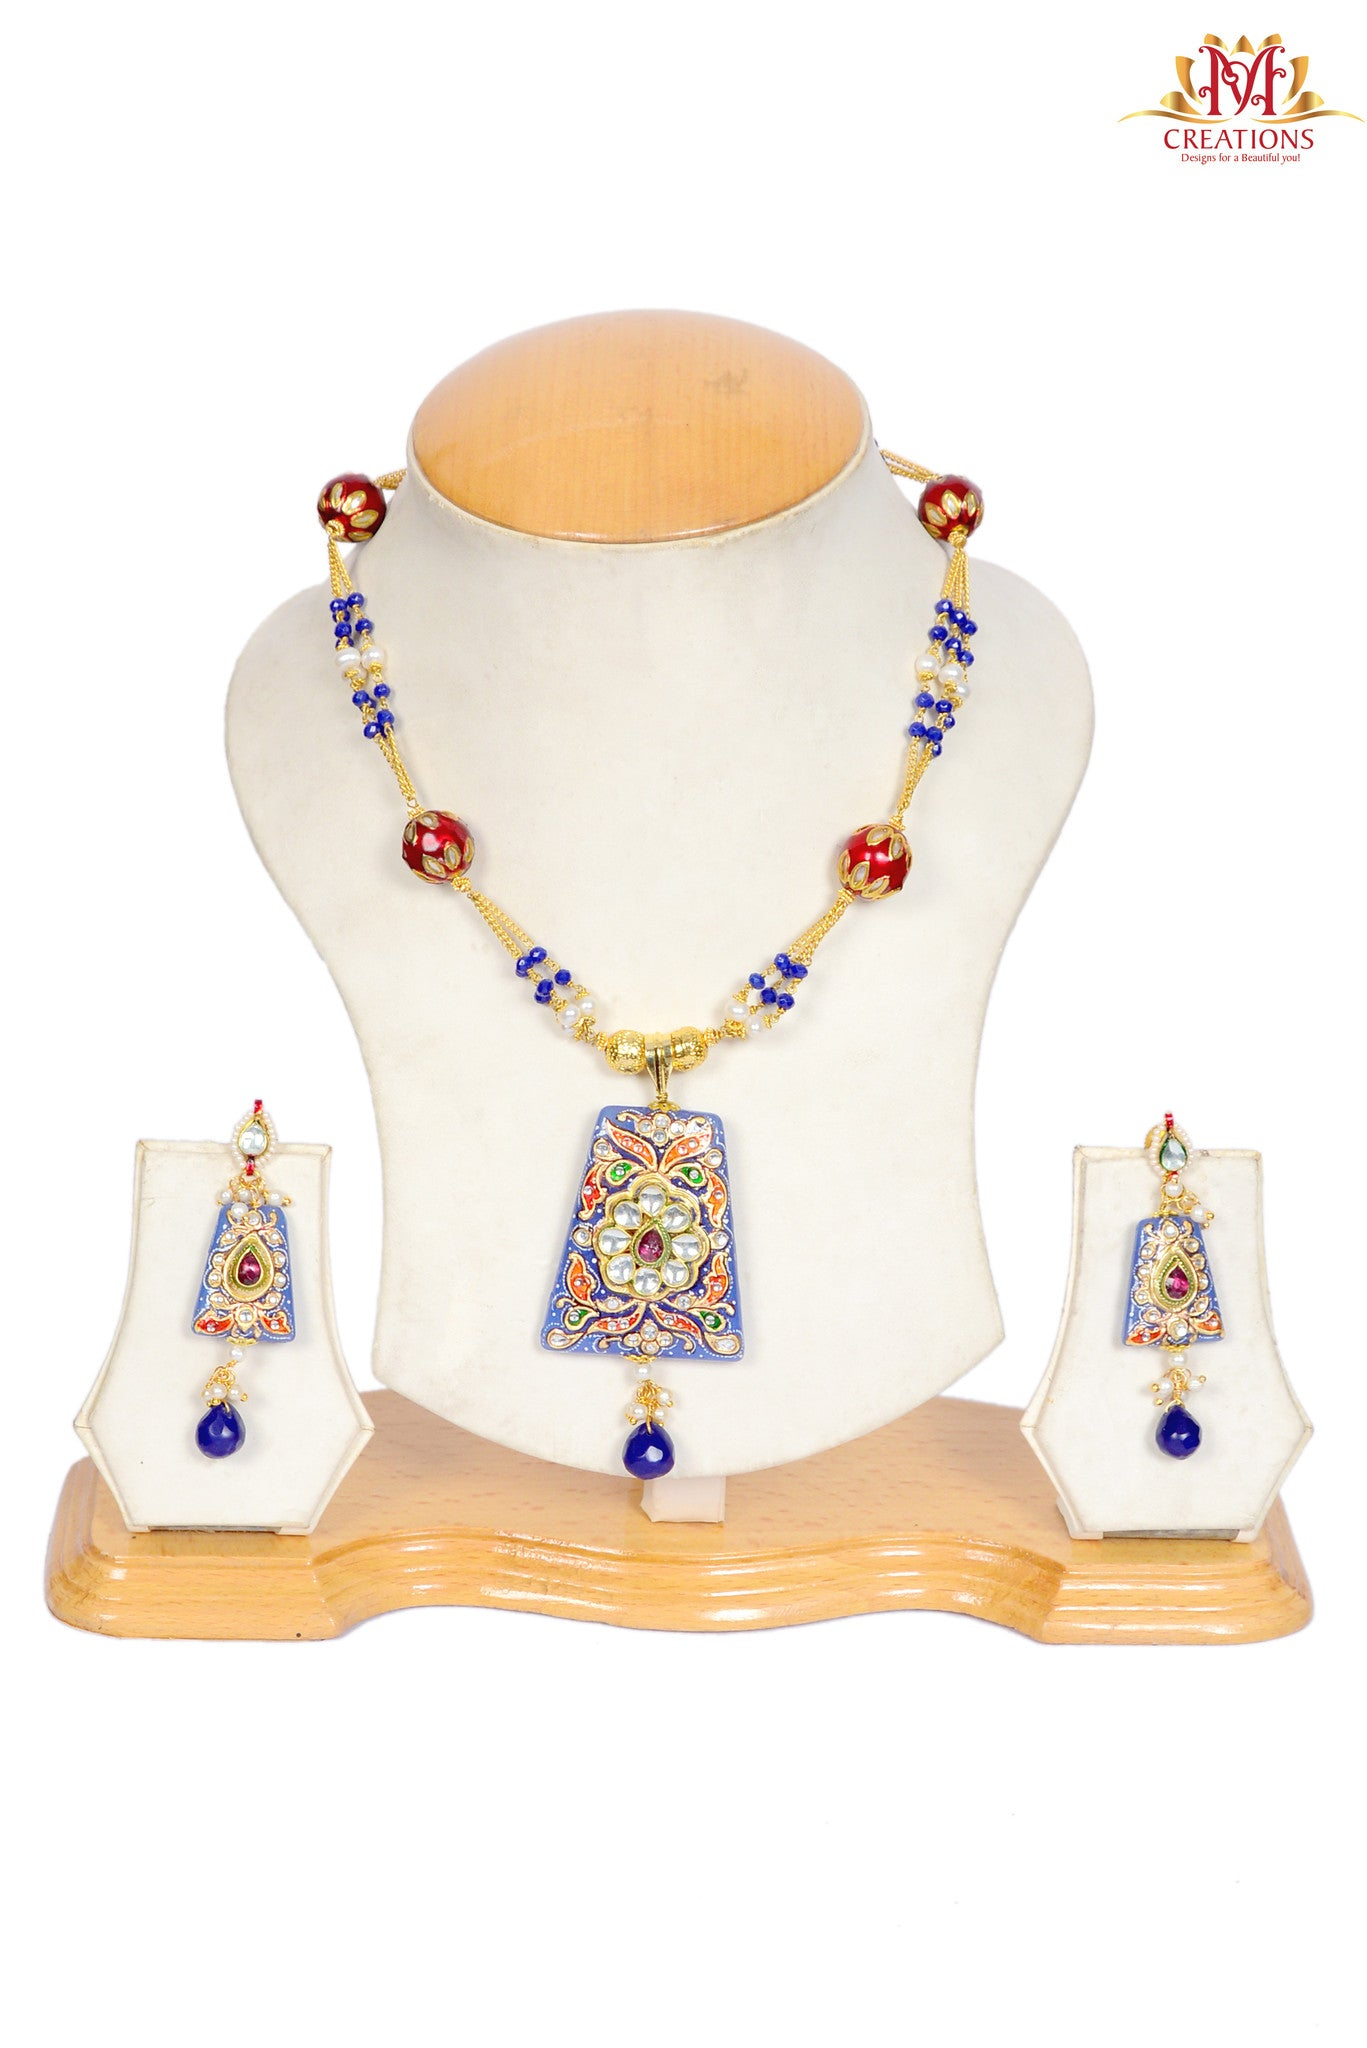 Kundan work necklace with red and blue beads